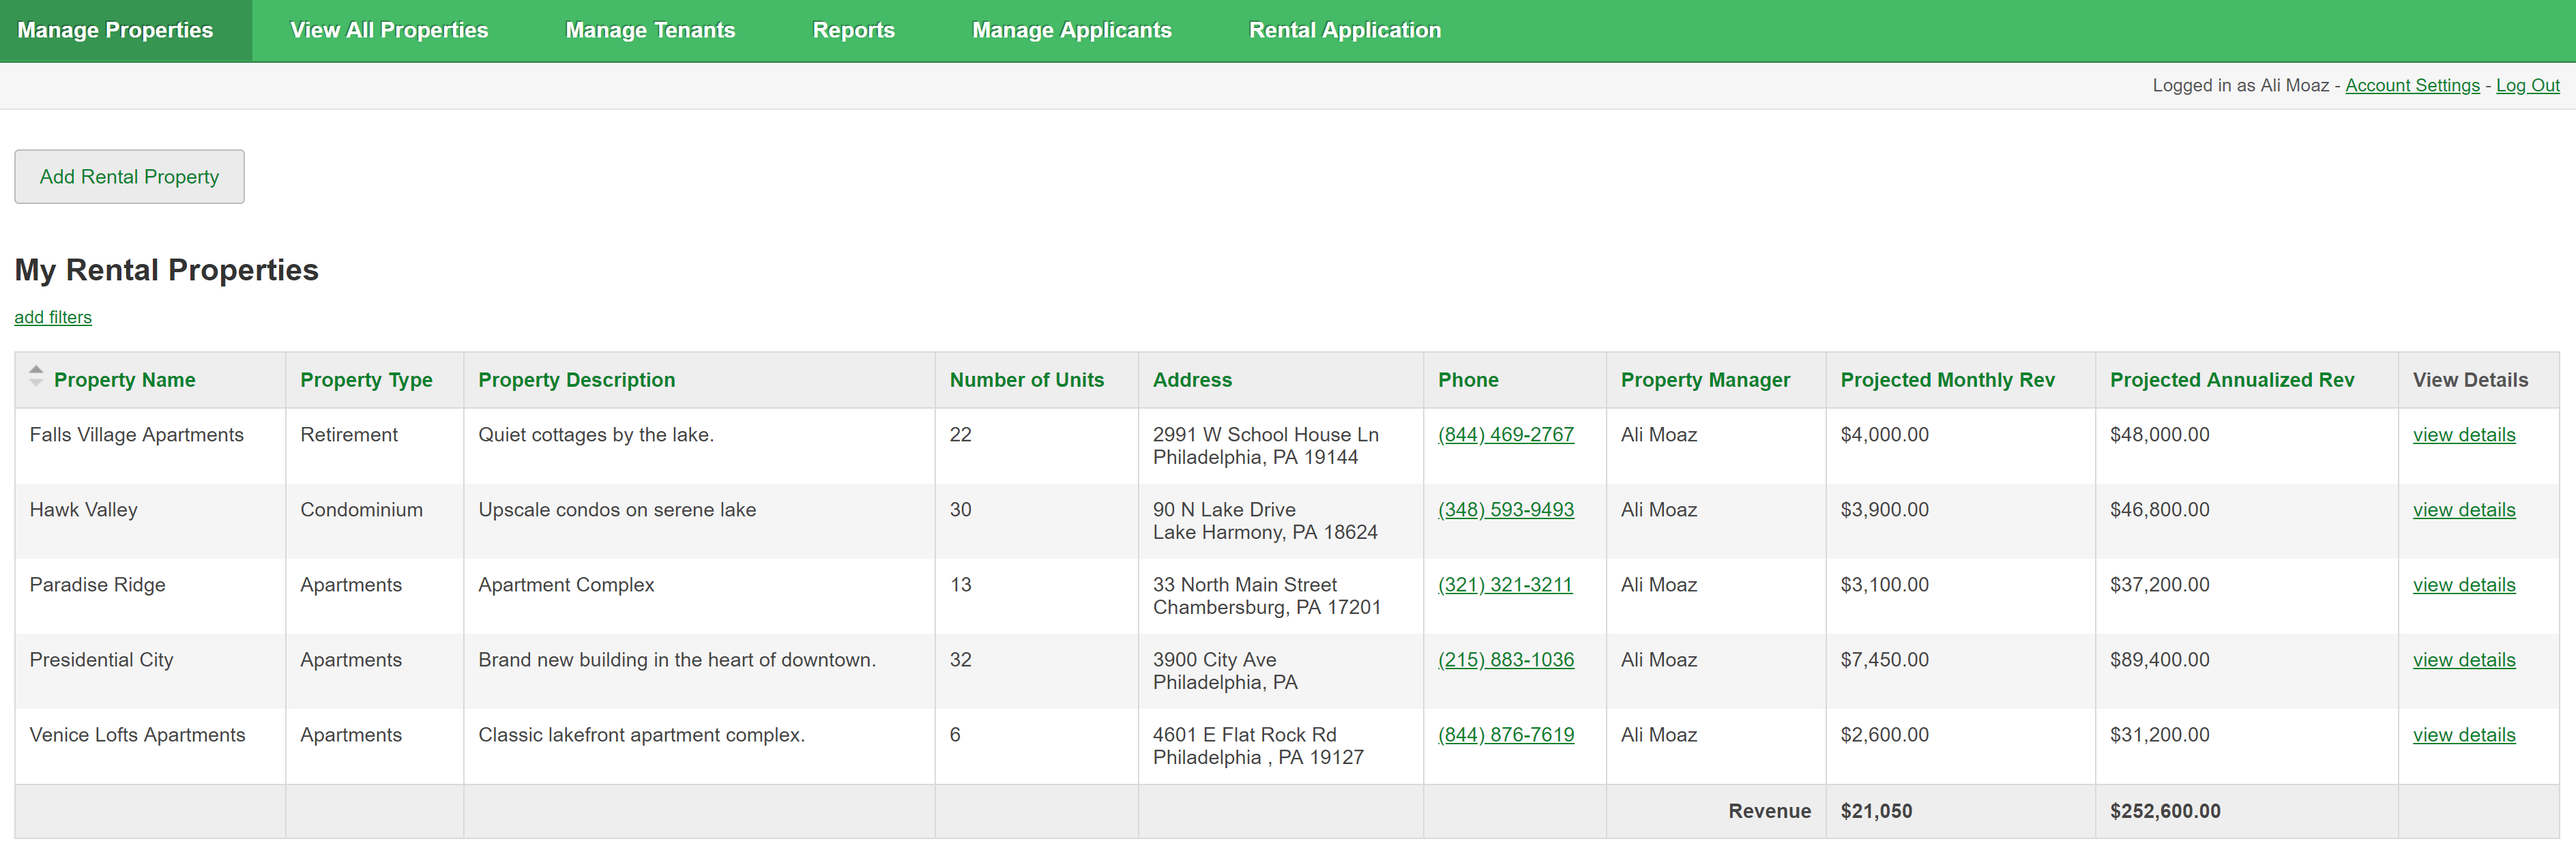 Online database and workflow templates: Property Management